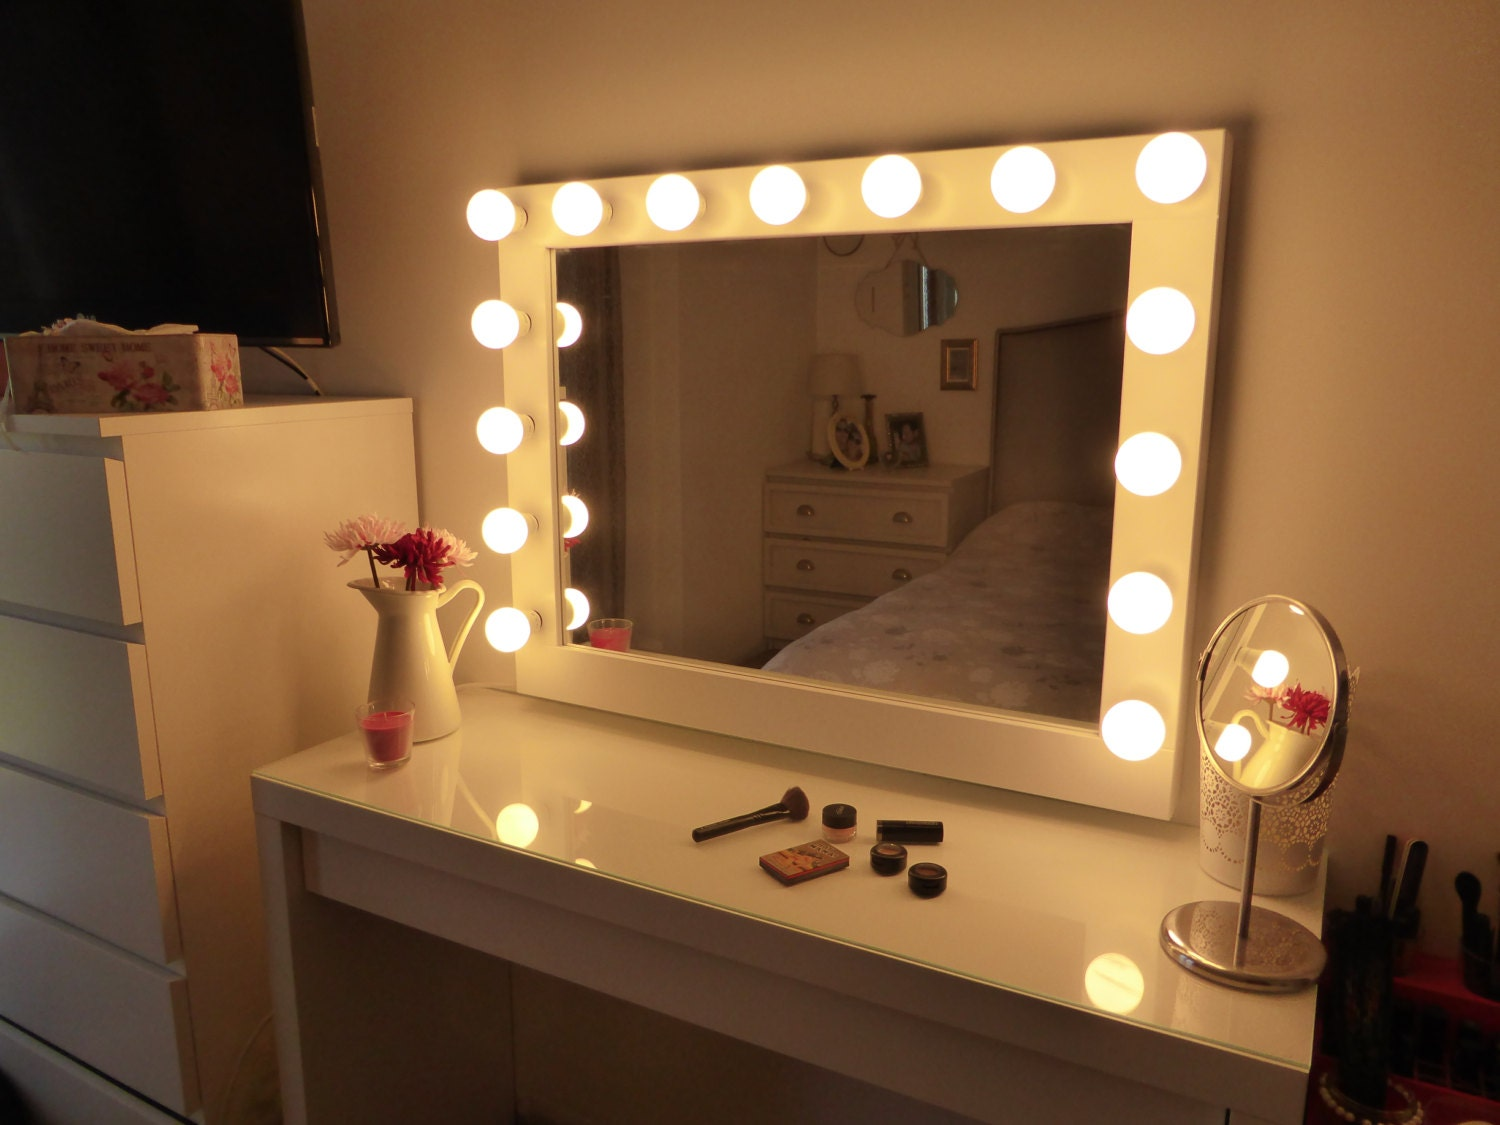 Vanity Mirror With Lights : Hollywood lighted vanity mirror-large makeup mirror with